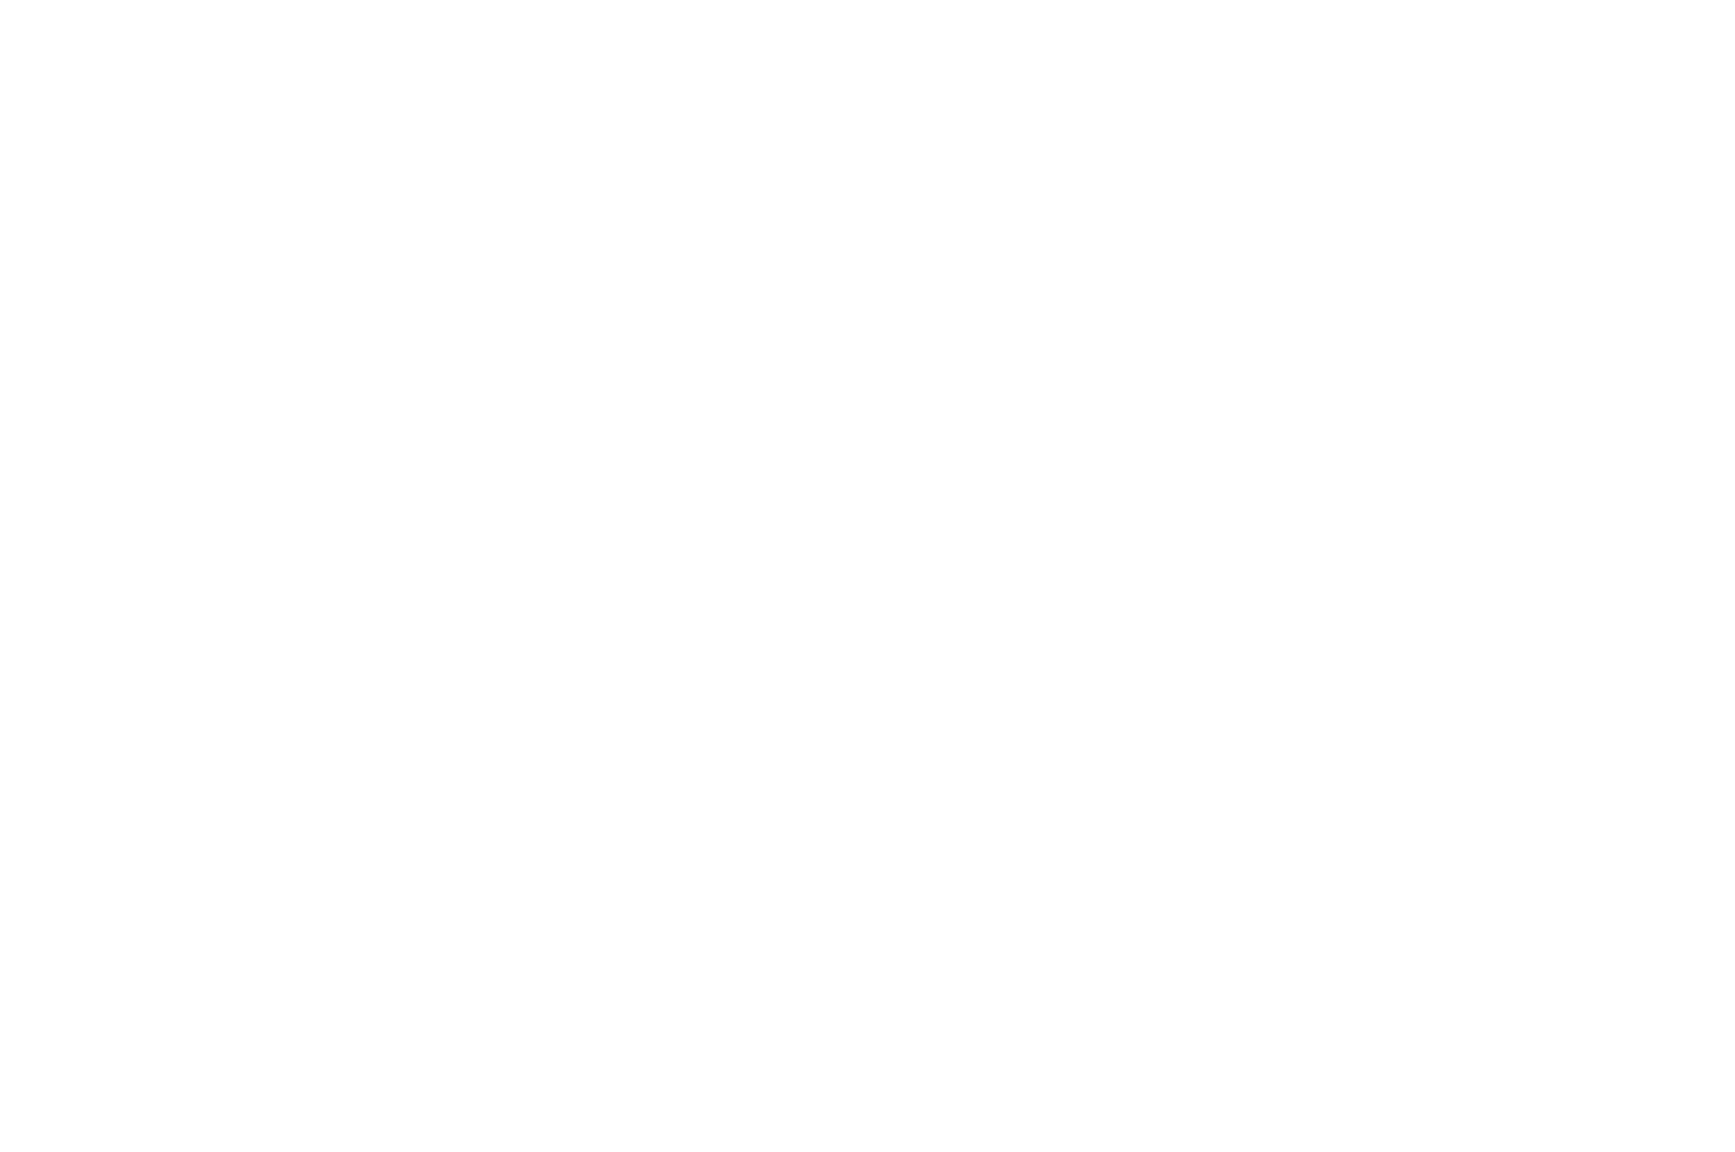 OFFICIAL SELECTION - Loft and Loaded Sea